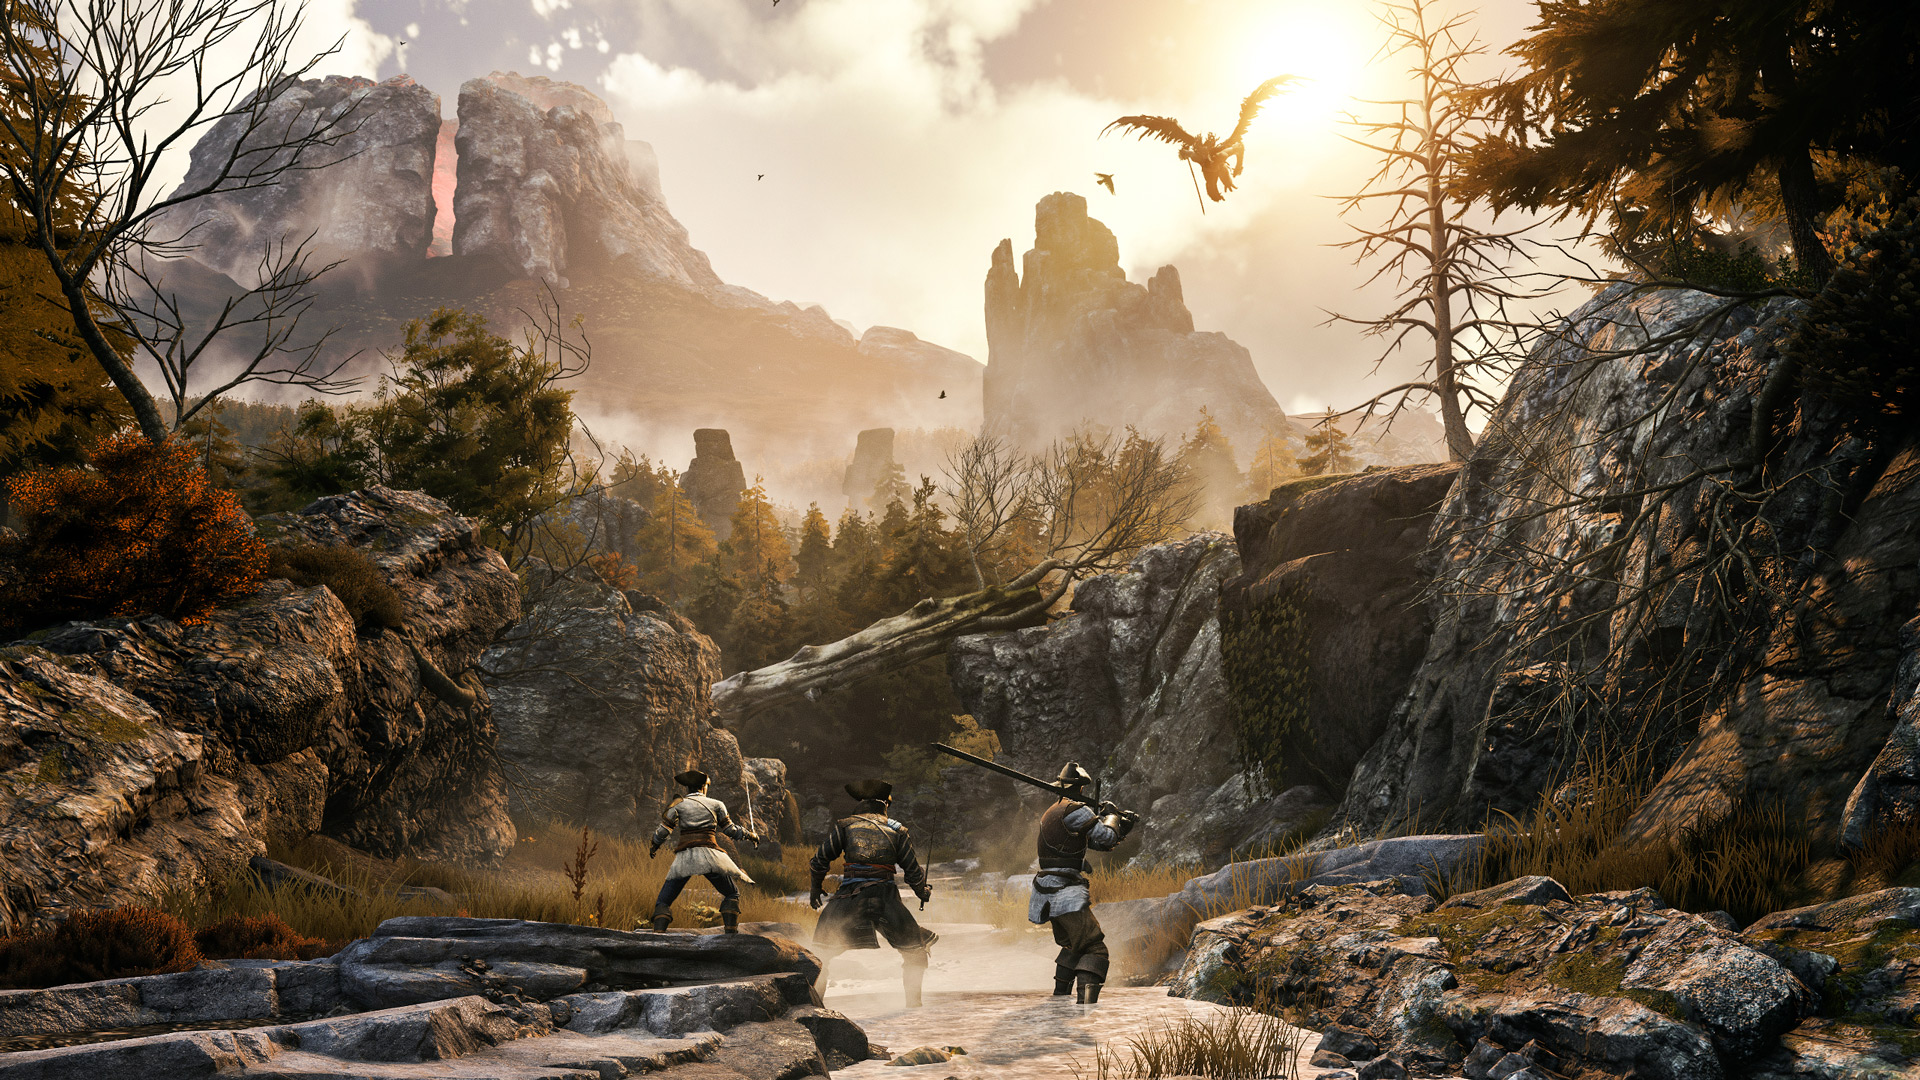 Fantasy, Focus Home Interactive, Greedfall, Greedfall Review, open world, PS4, PS4 Review, Role Playing Game, RPG, Singleplayer, Spiders Studios, Video Game, Video Game Review